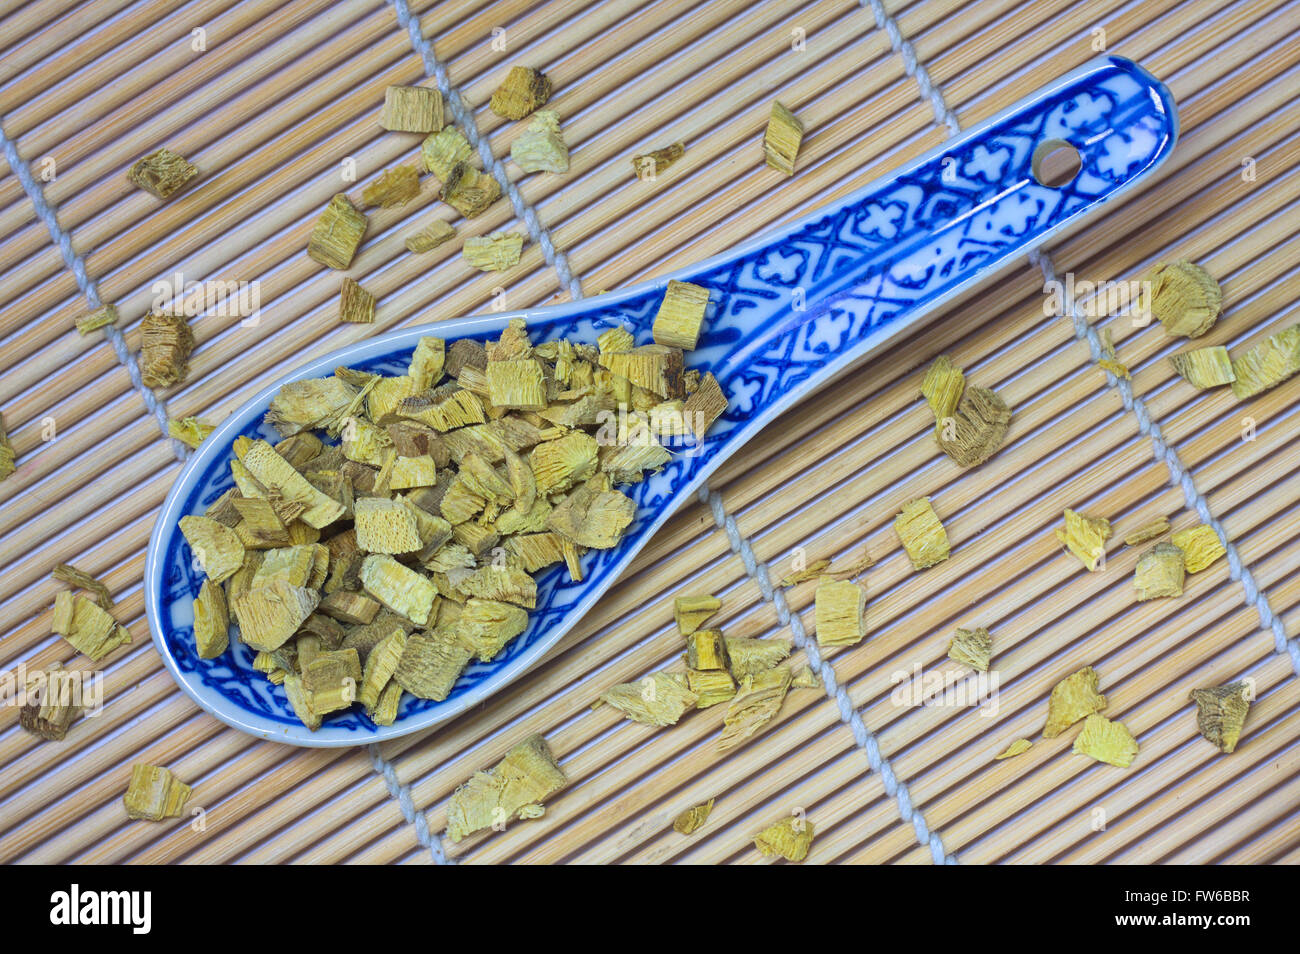 Dried liquorice on a spoon - Stock Image